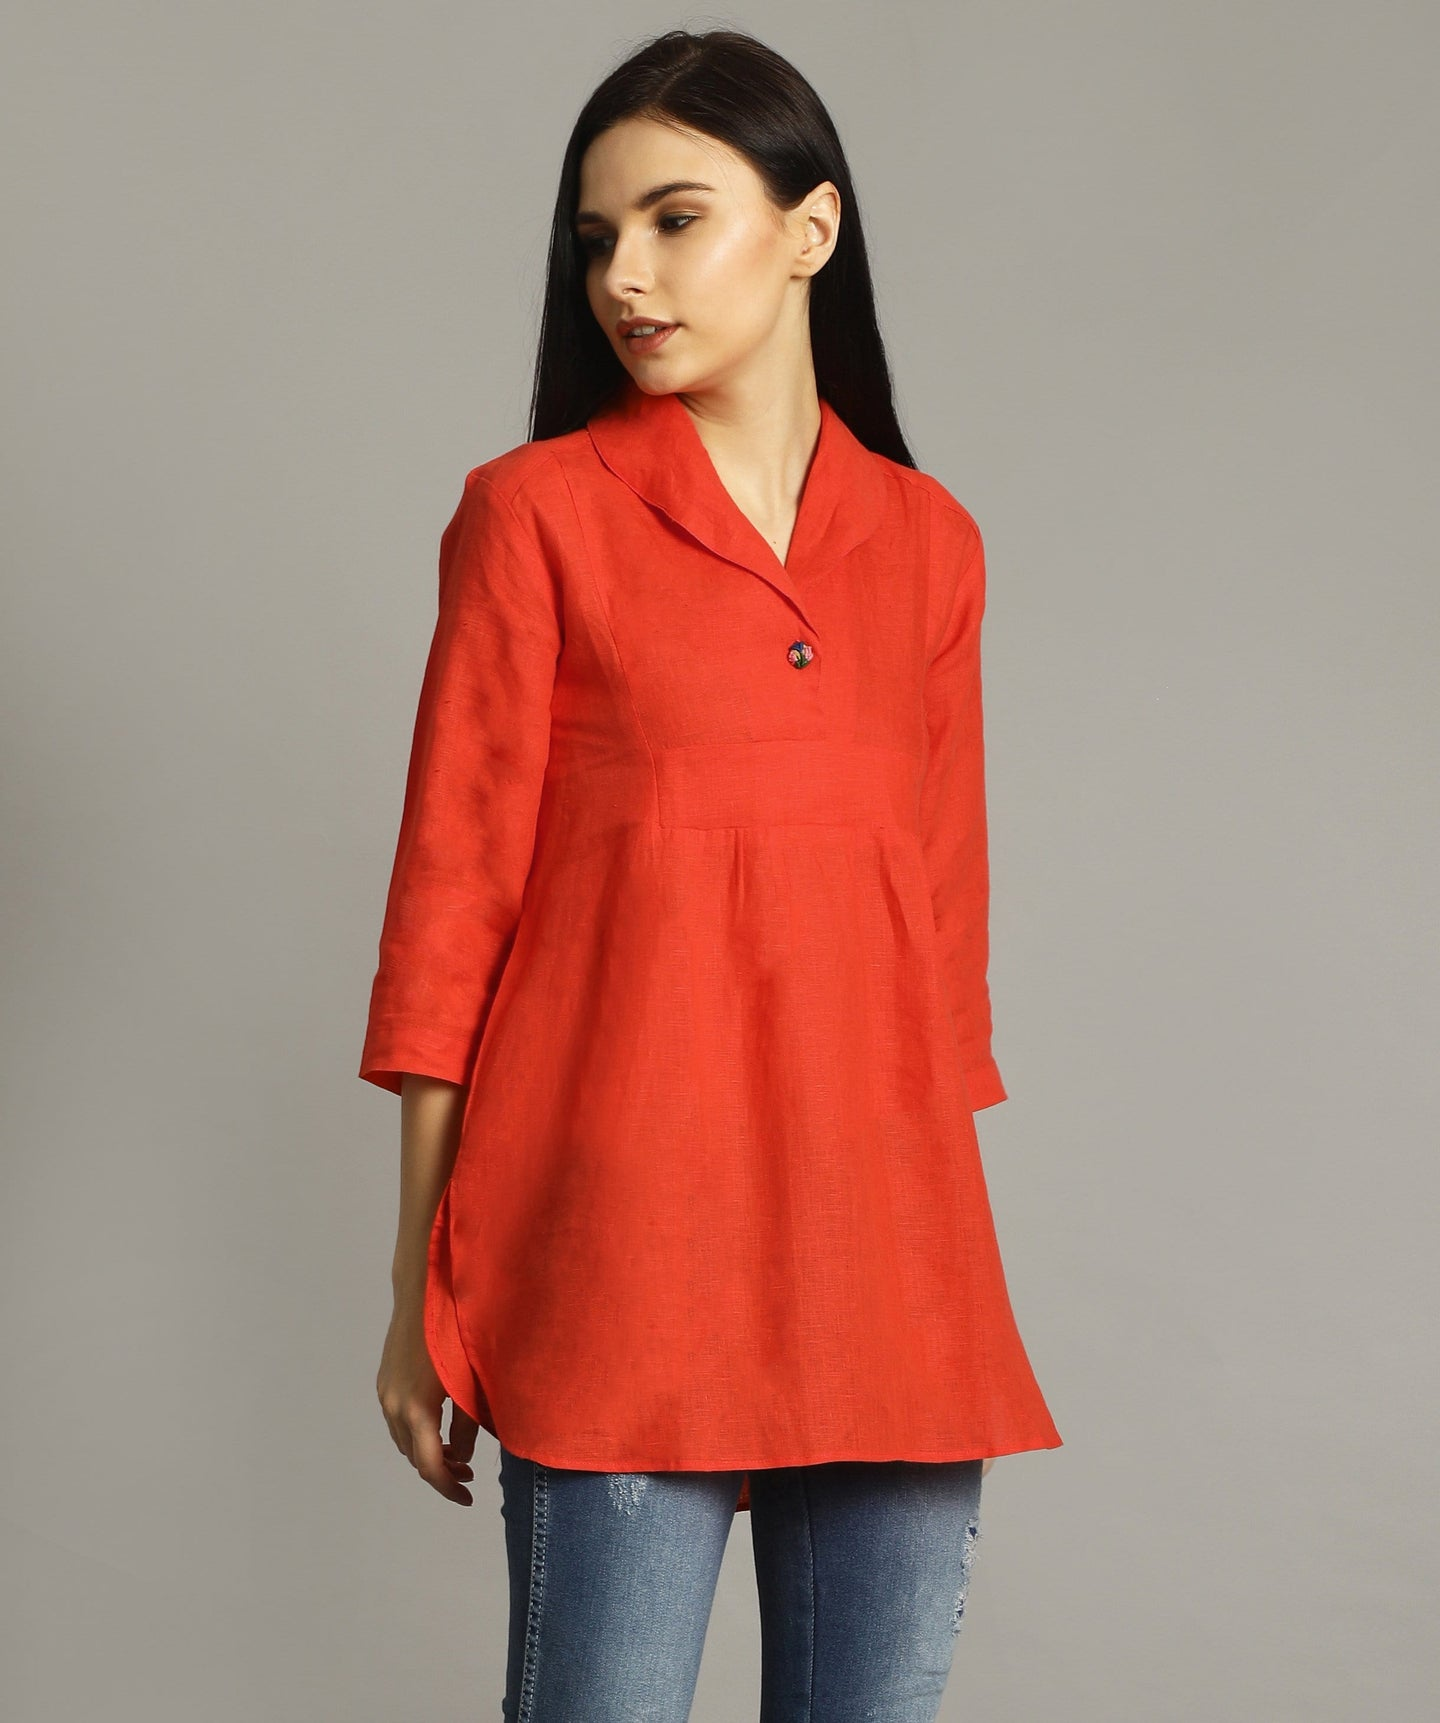 Coral Red High-Low Handloom Tunic